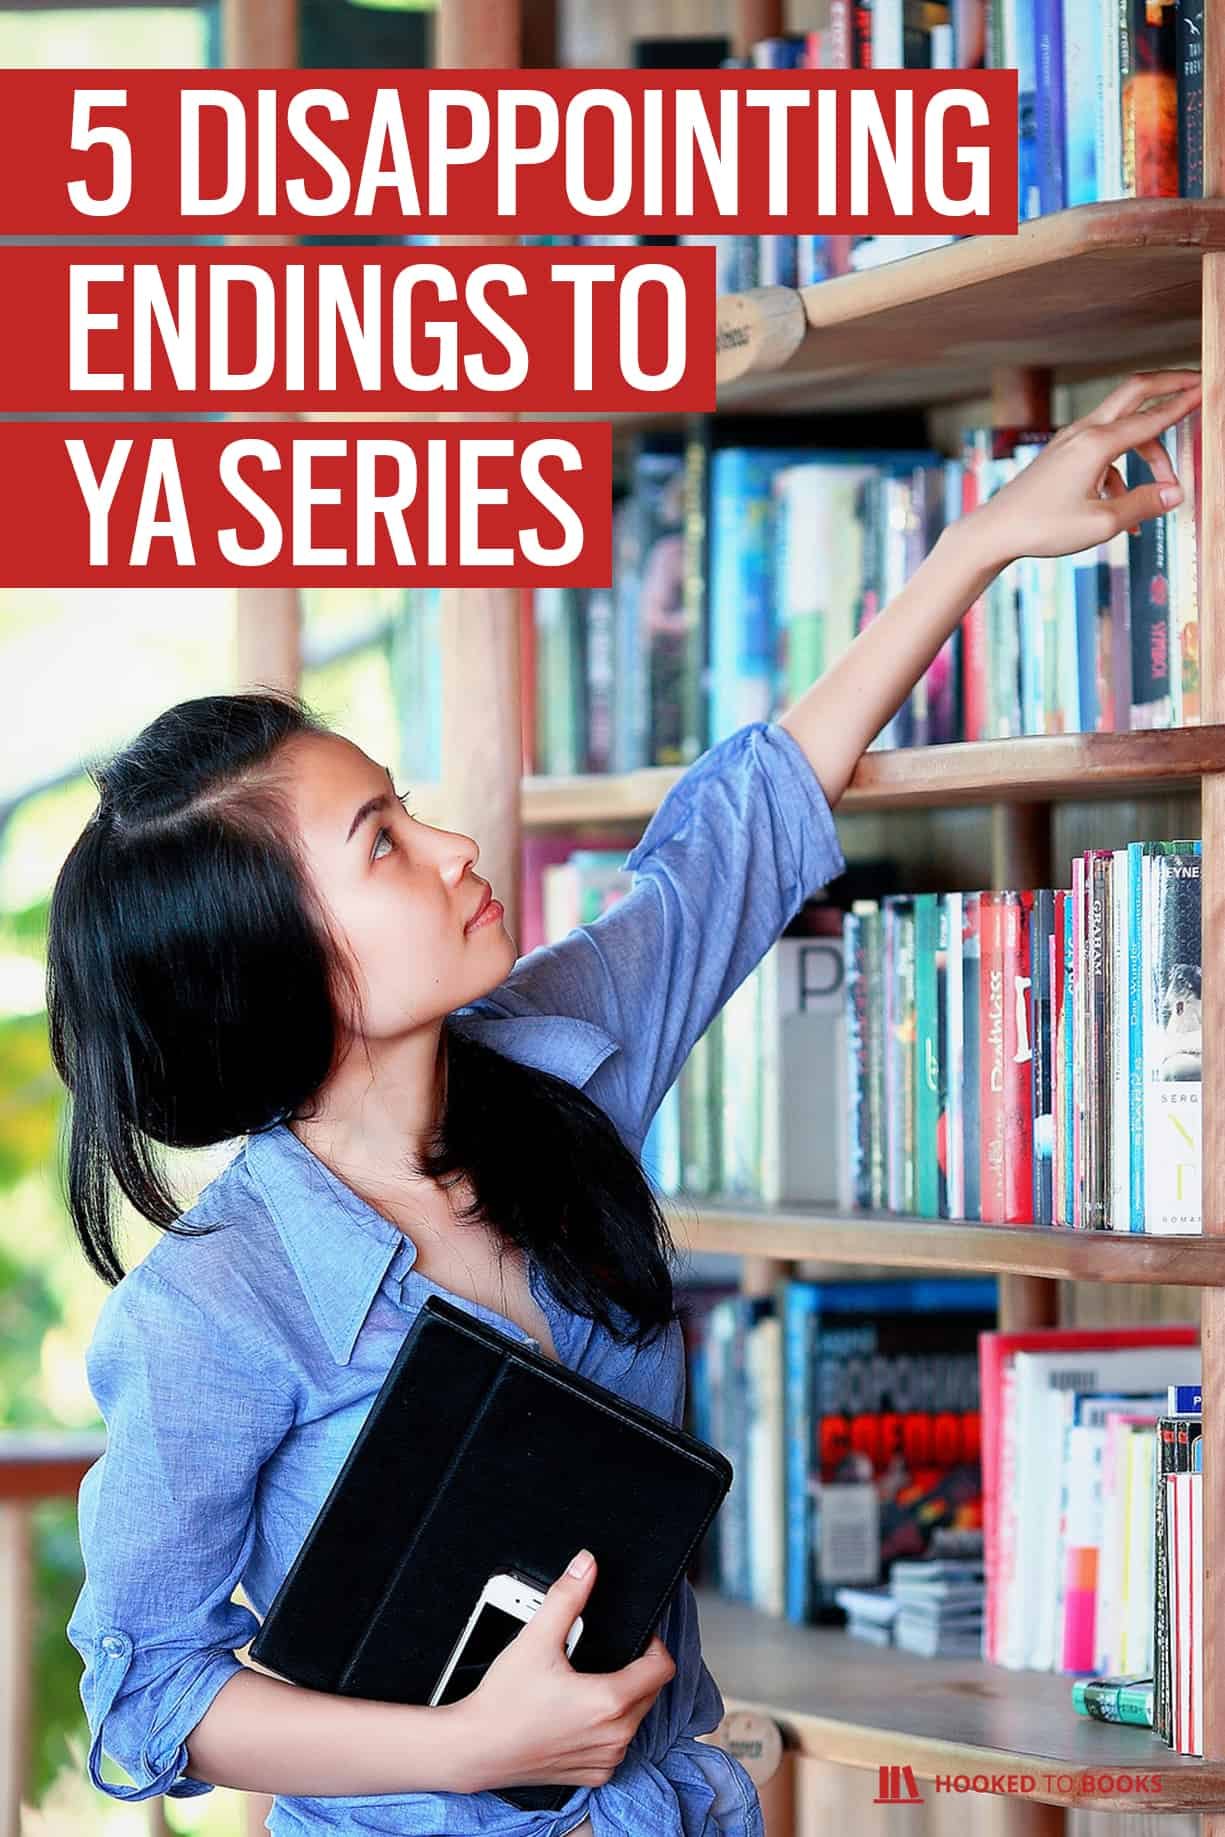 5 Disappointing Endings to YA Series